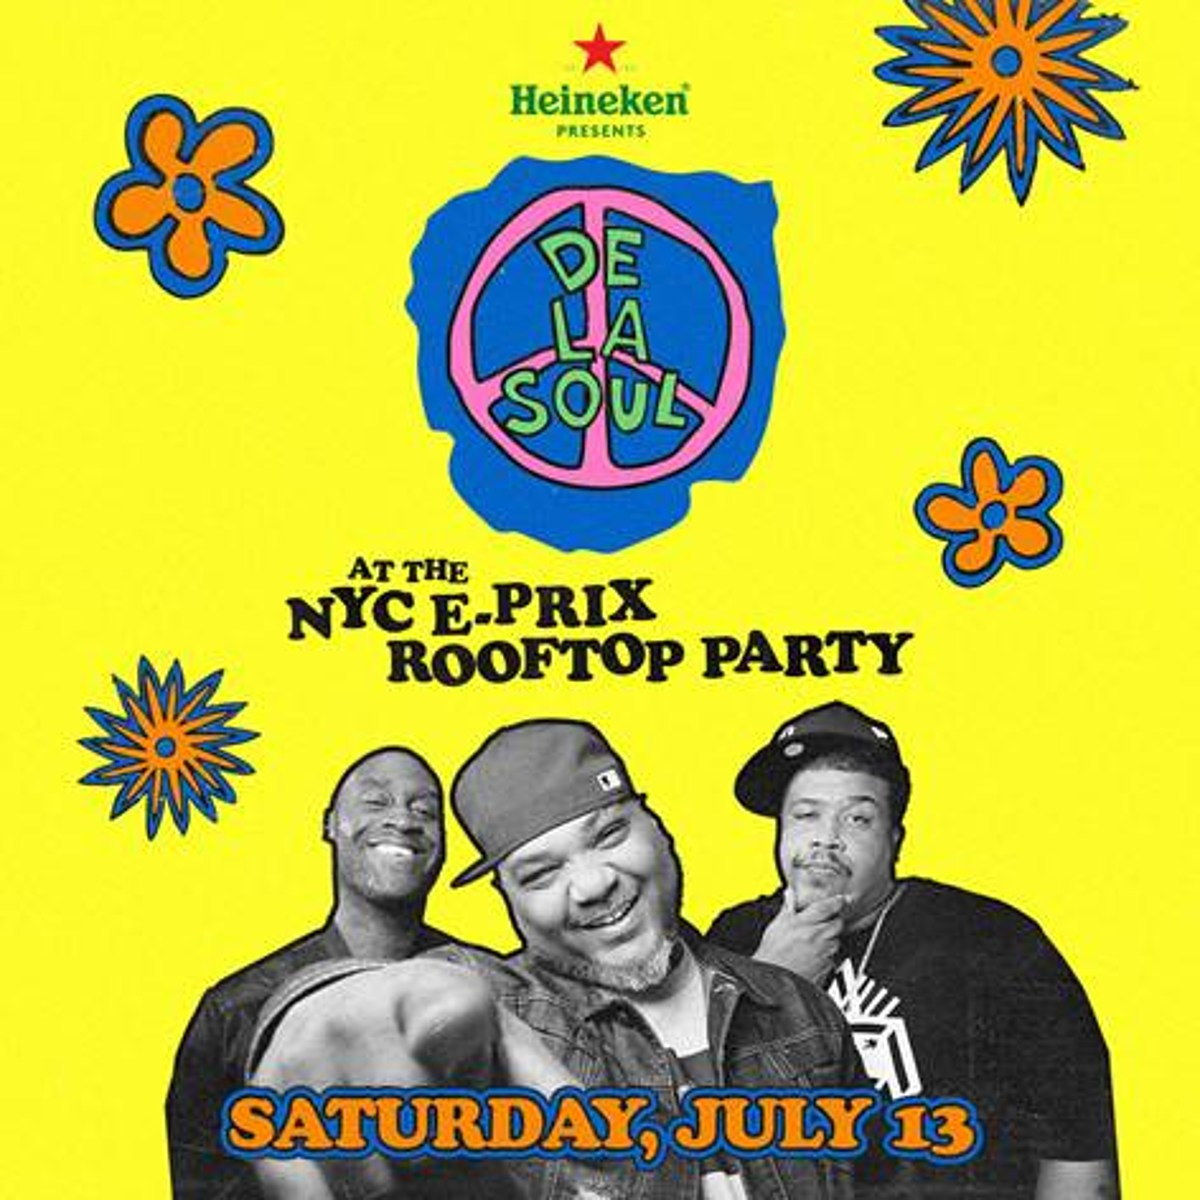 De La Soul touring, playing Taste of Chicago NYC's Rooftop at Pier 17